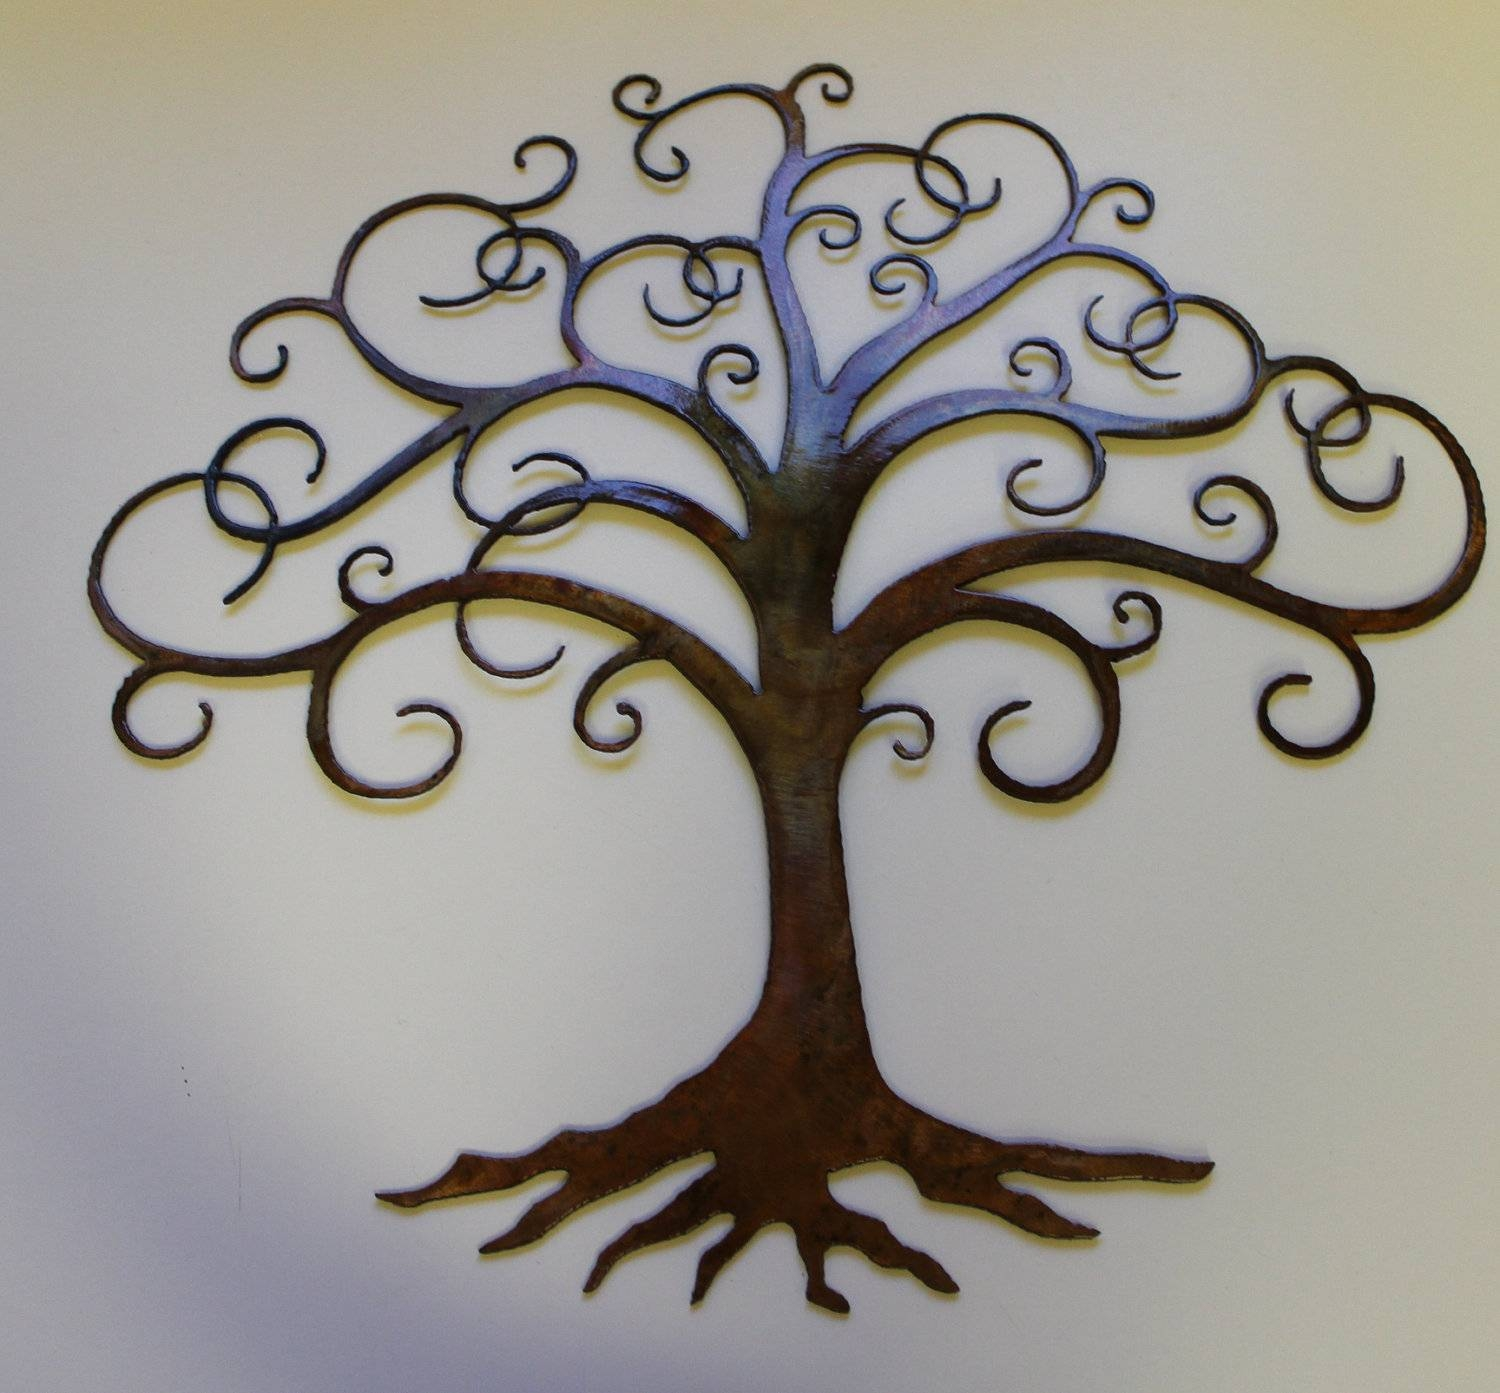 Wall Art Designs: Metal Wall Art Trees Breathtaking Large Metal With Most Up To Date Metal Wall Art Trees (View 15 of 20)